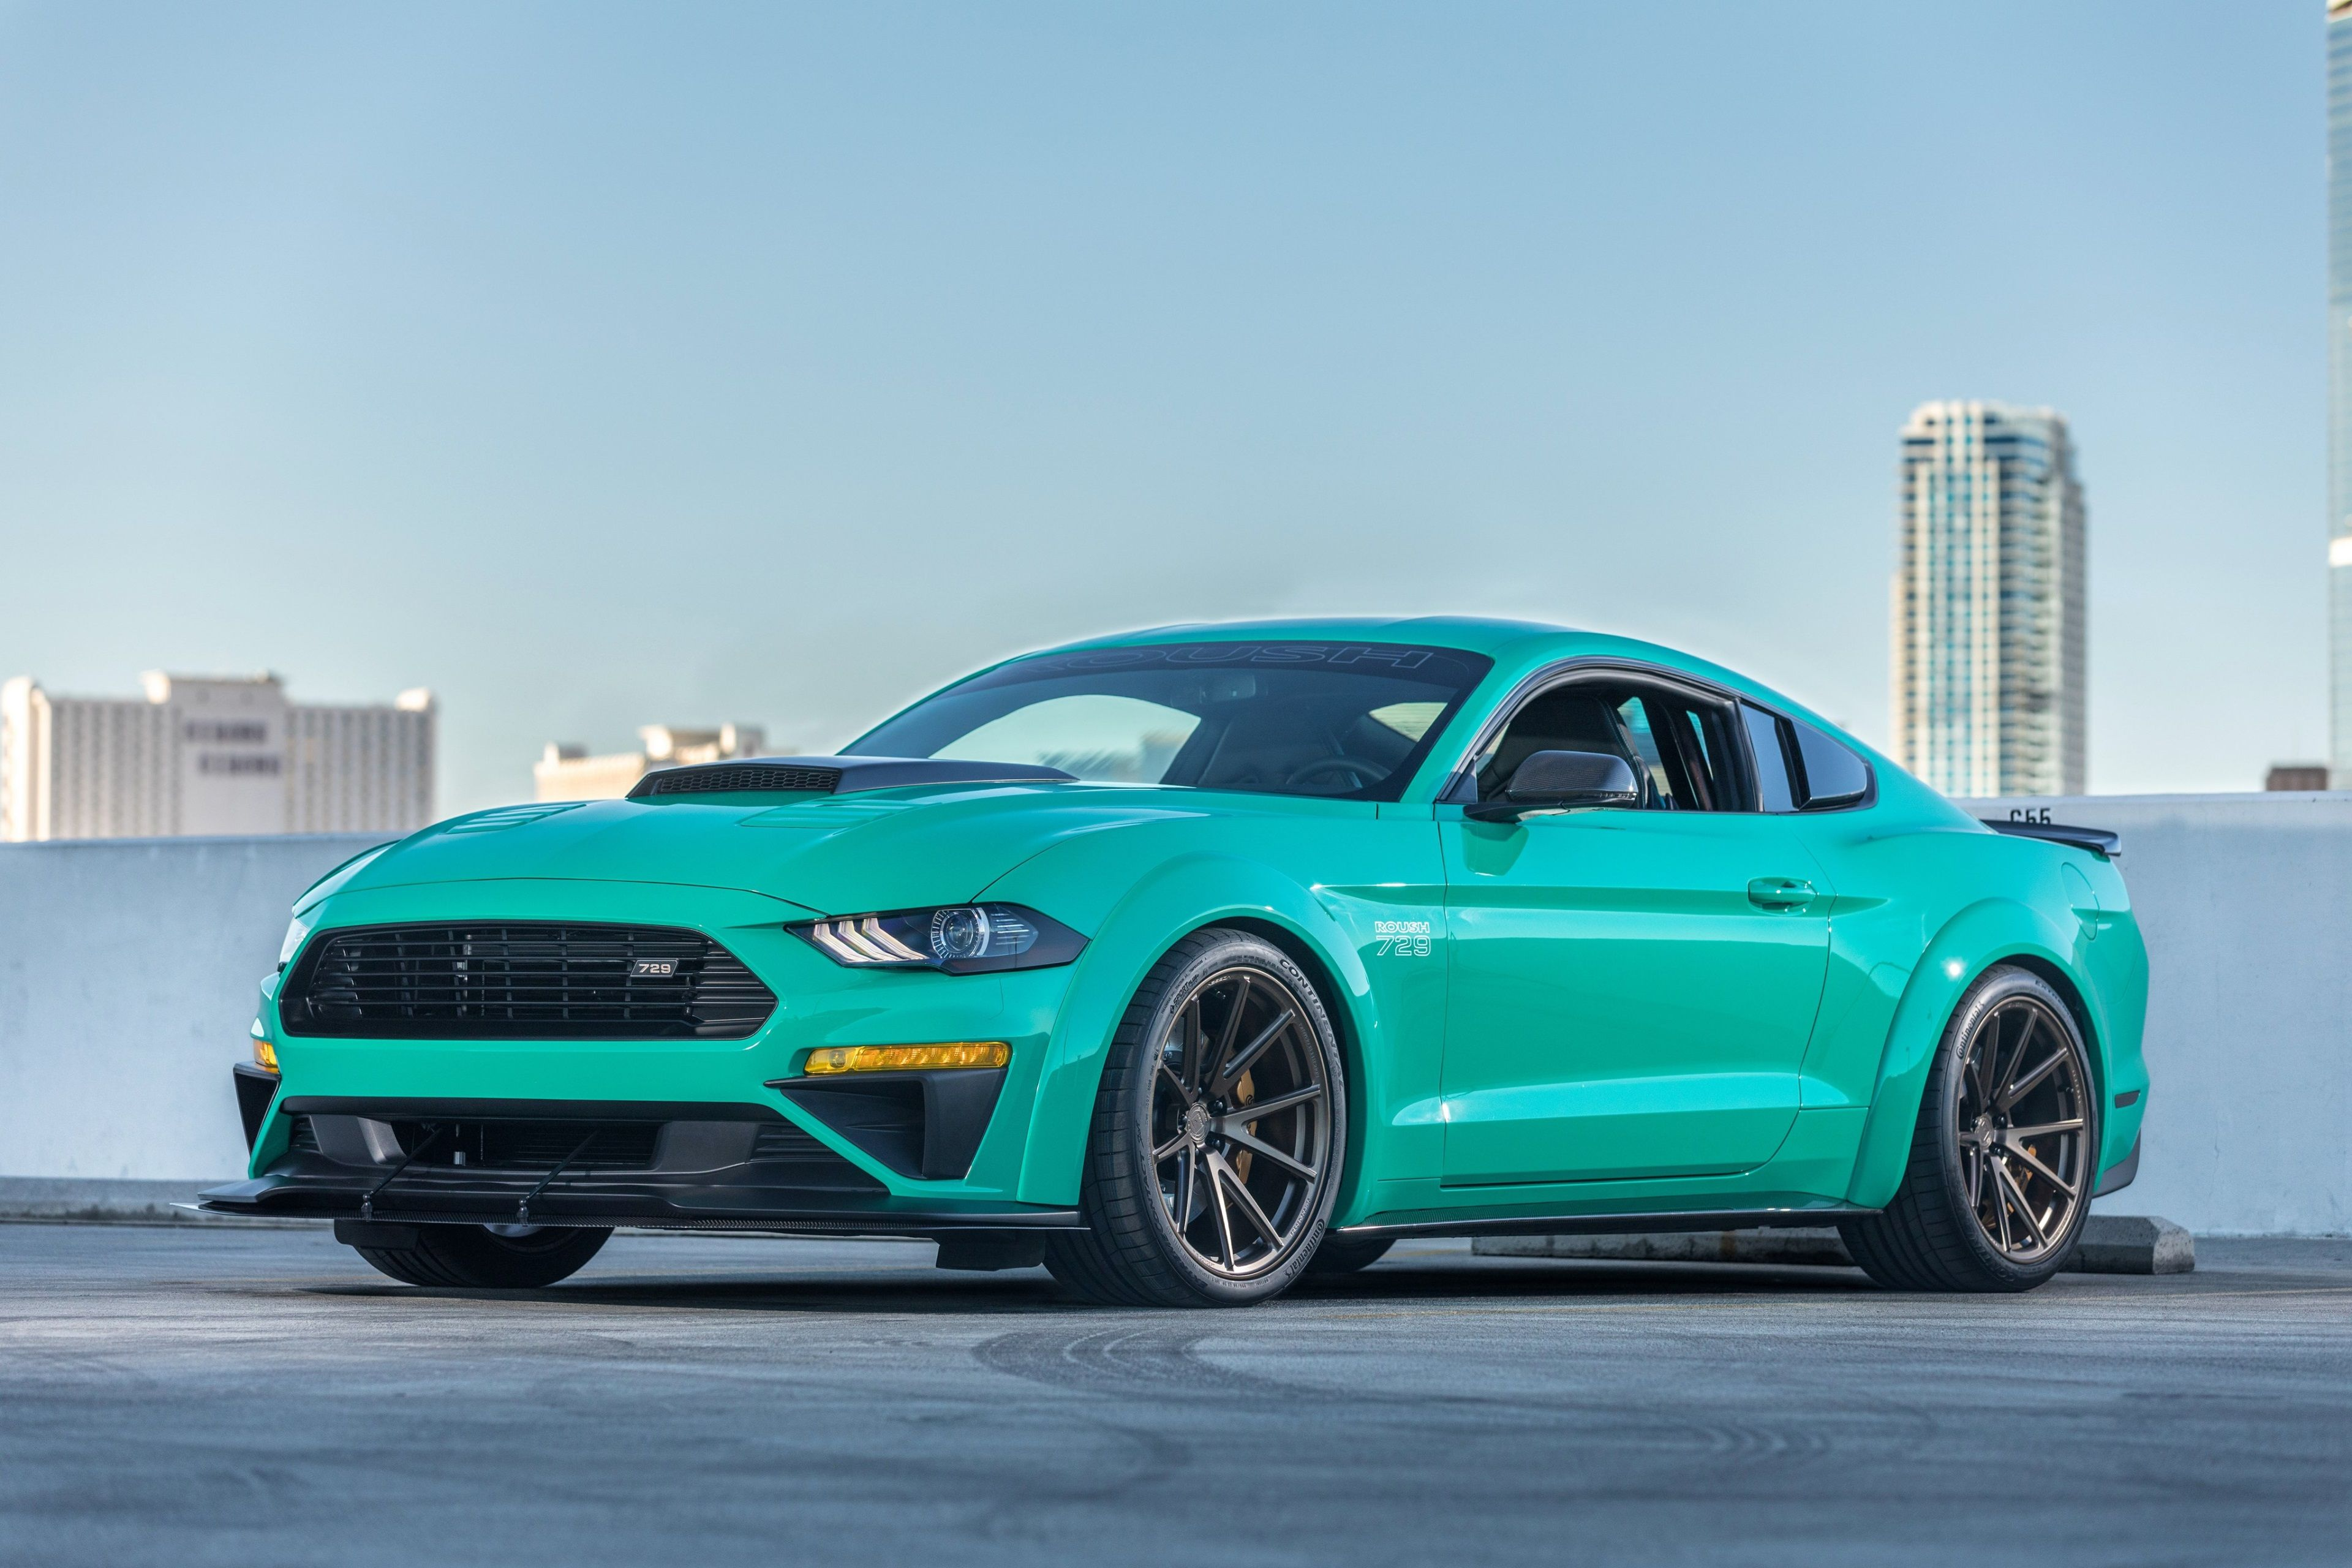 Dimensions Of Gt500 Lemans Stripes Ford Mustang Forums Mustang Fastback Mustang Classic Mustang